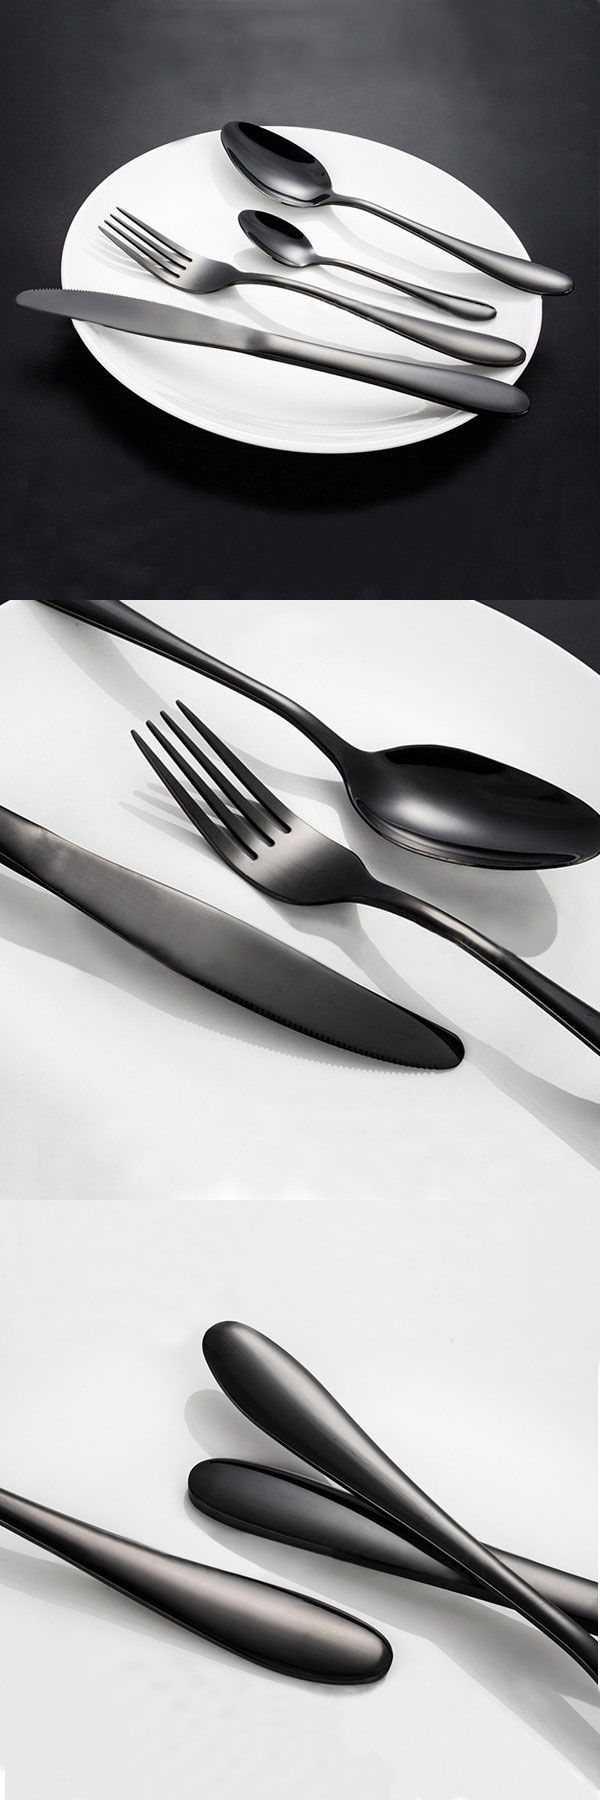 Food grade stainless steel, Black Gold Flatware,mirror surface polishing